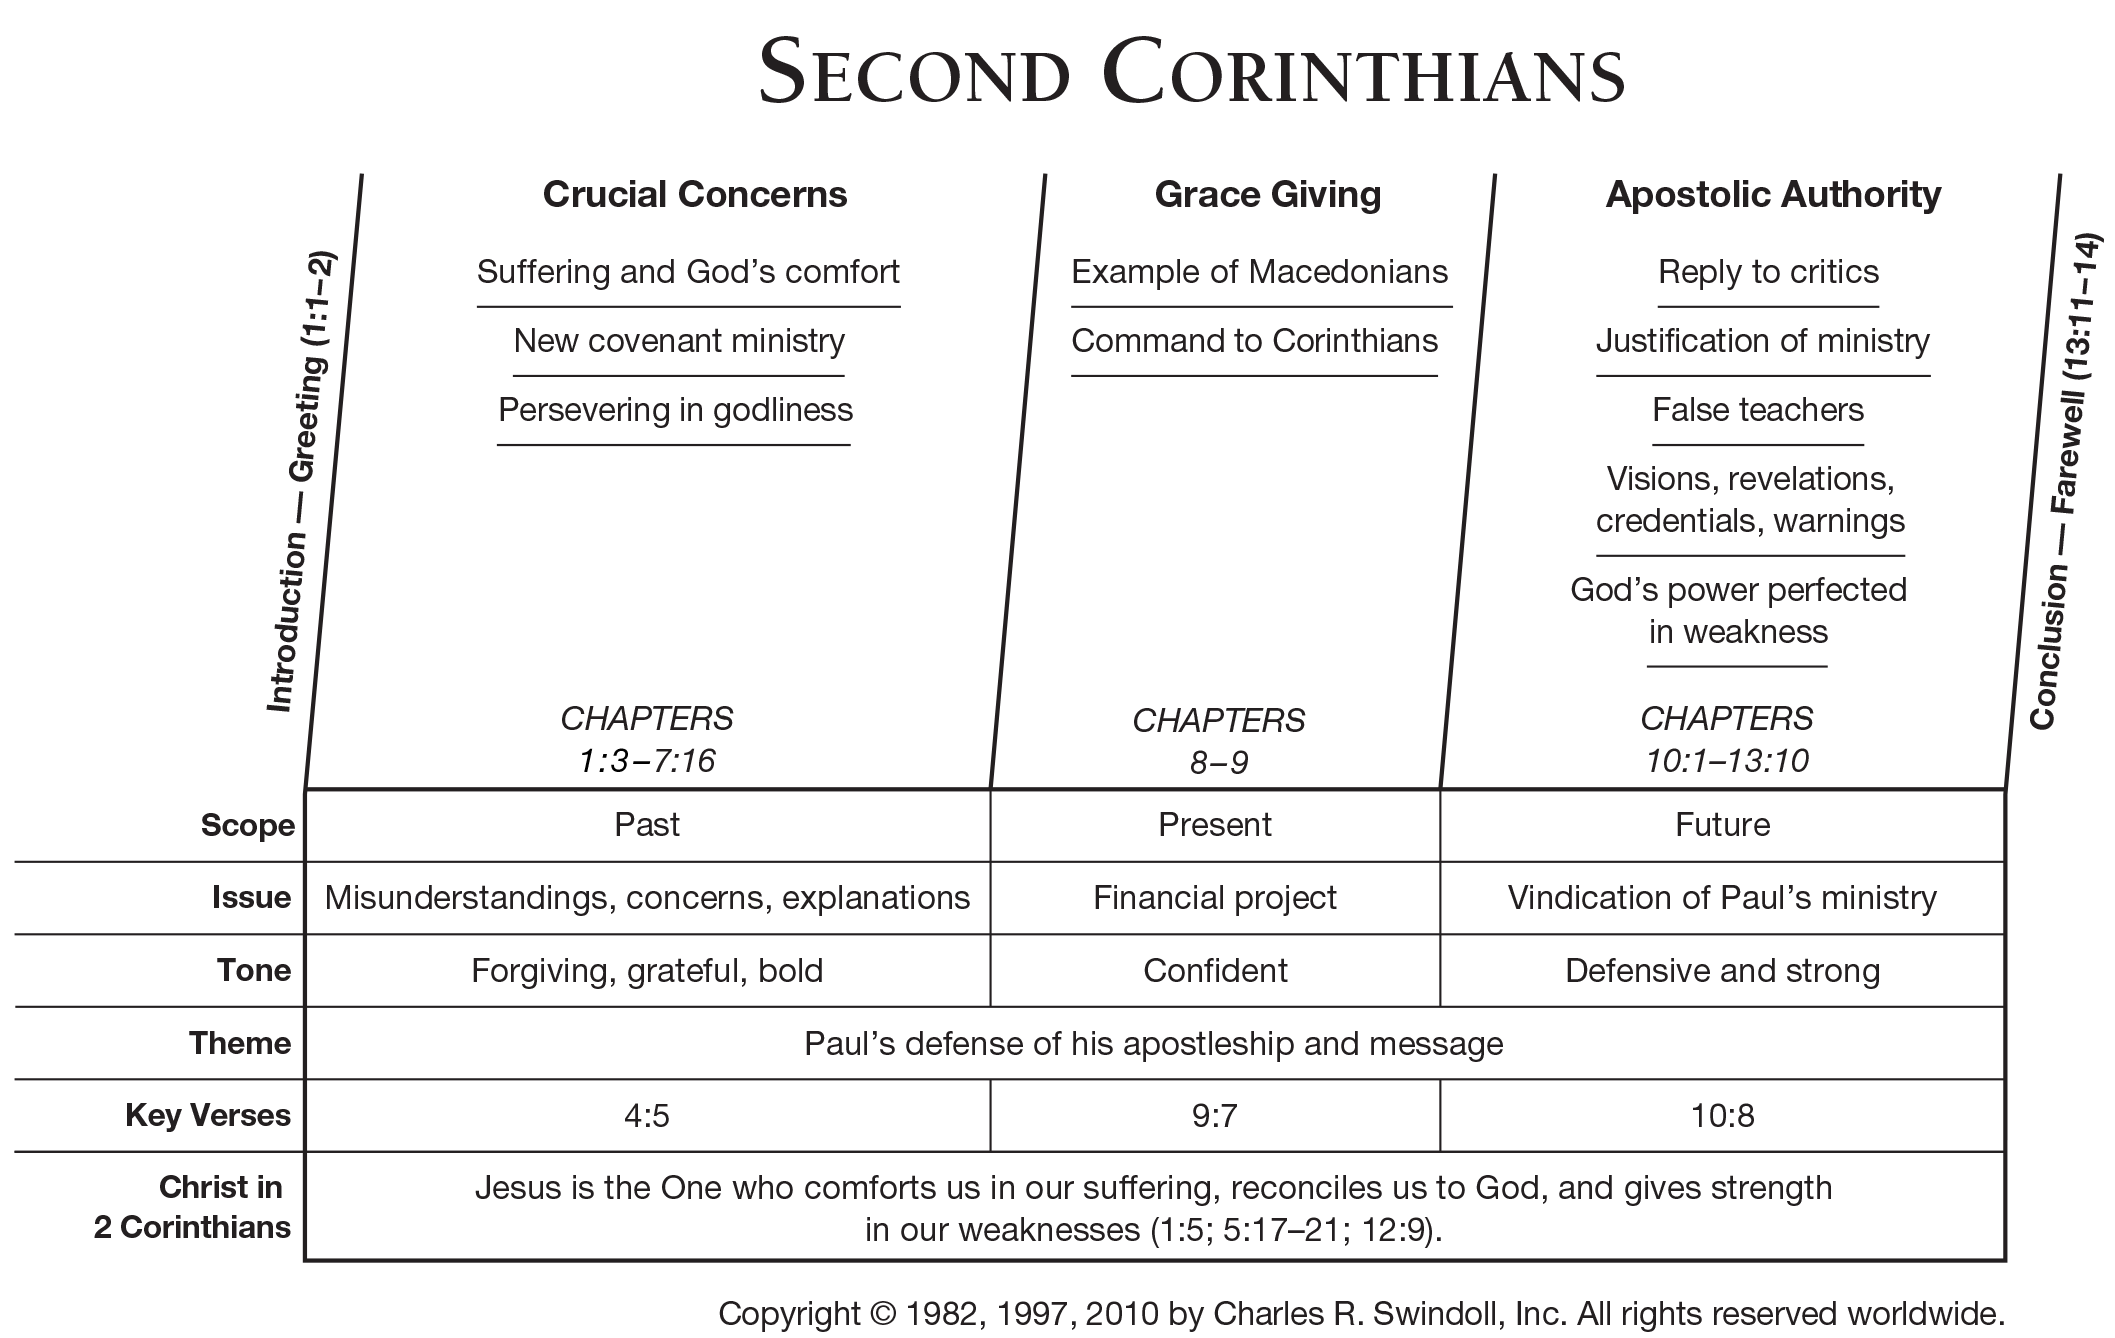 Book Of Second Corinthians Overview